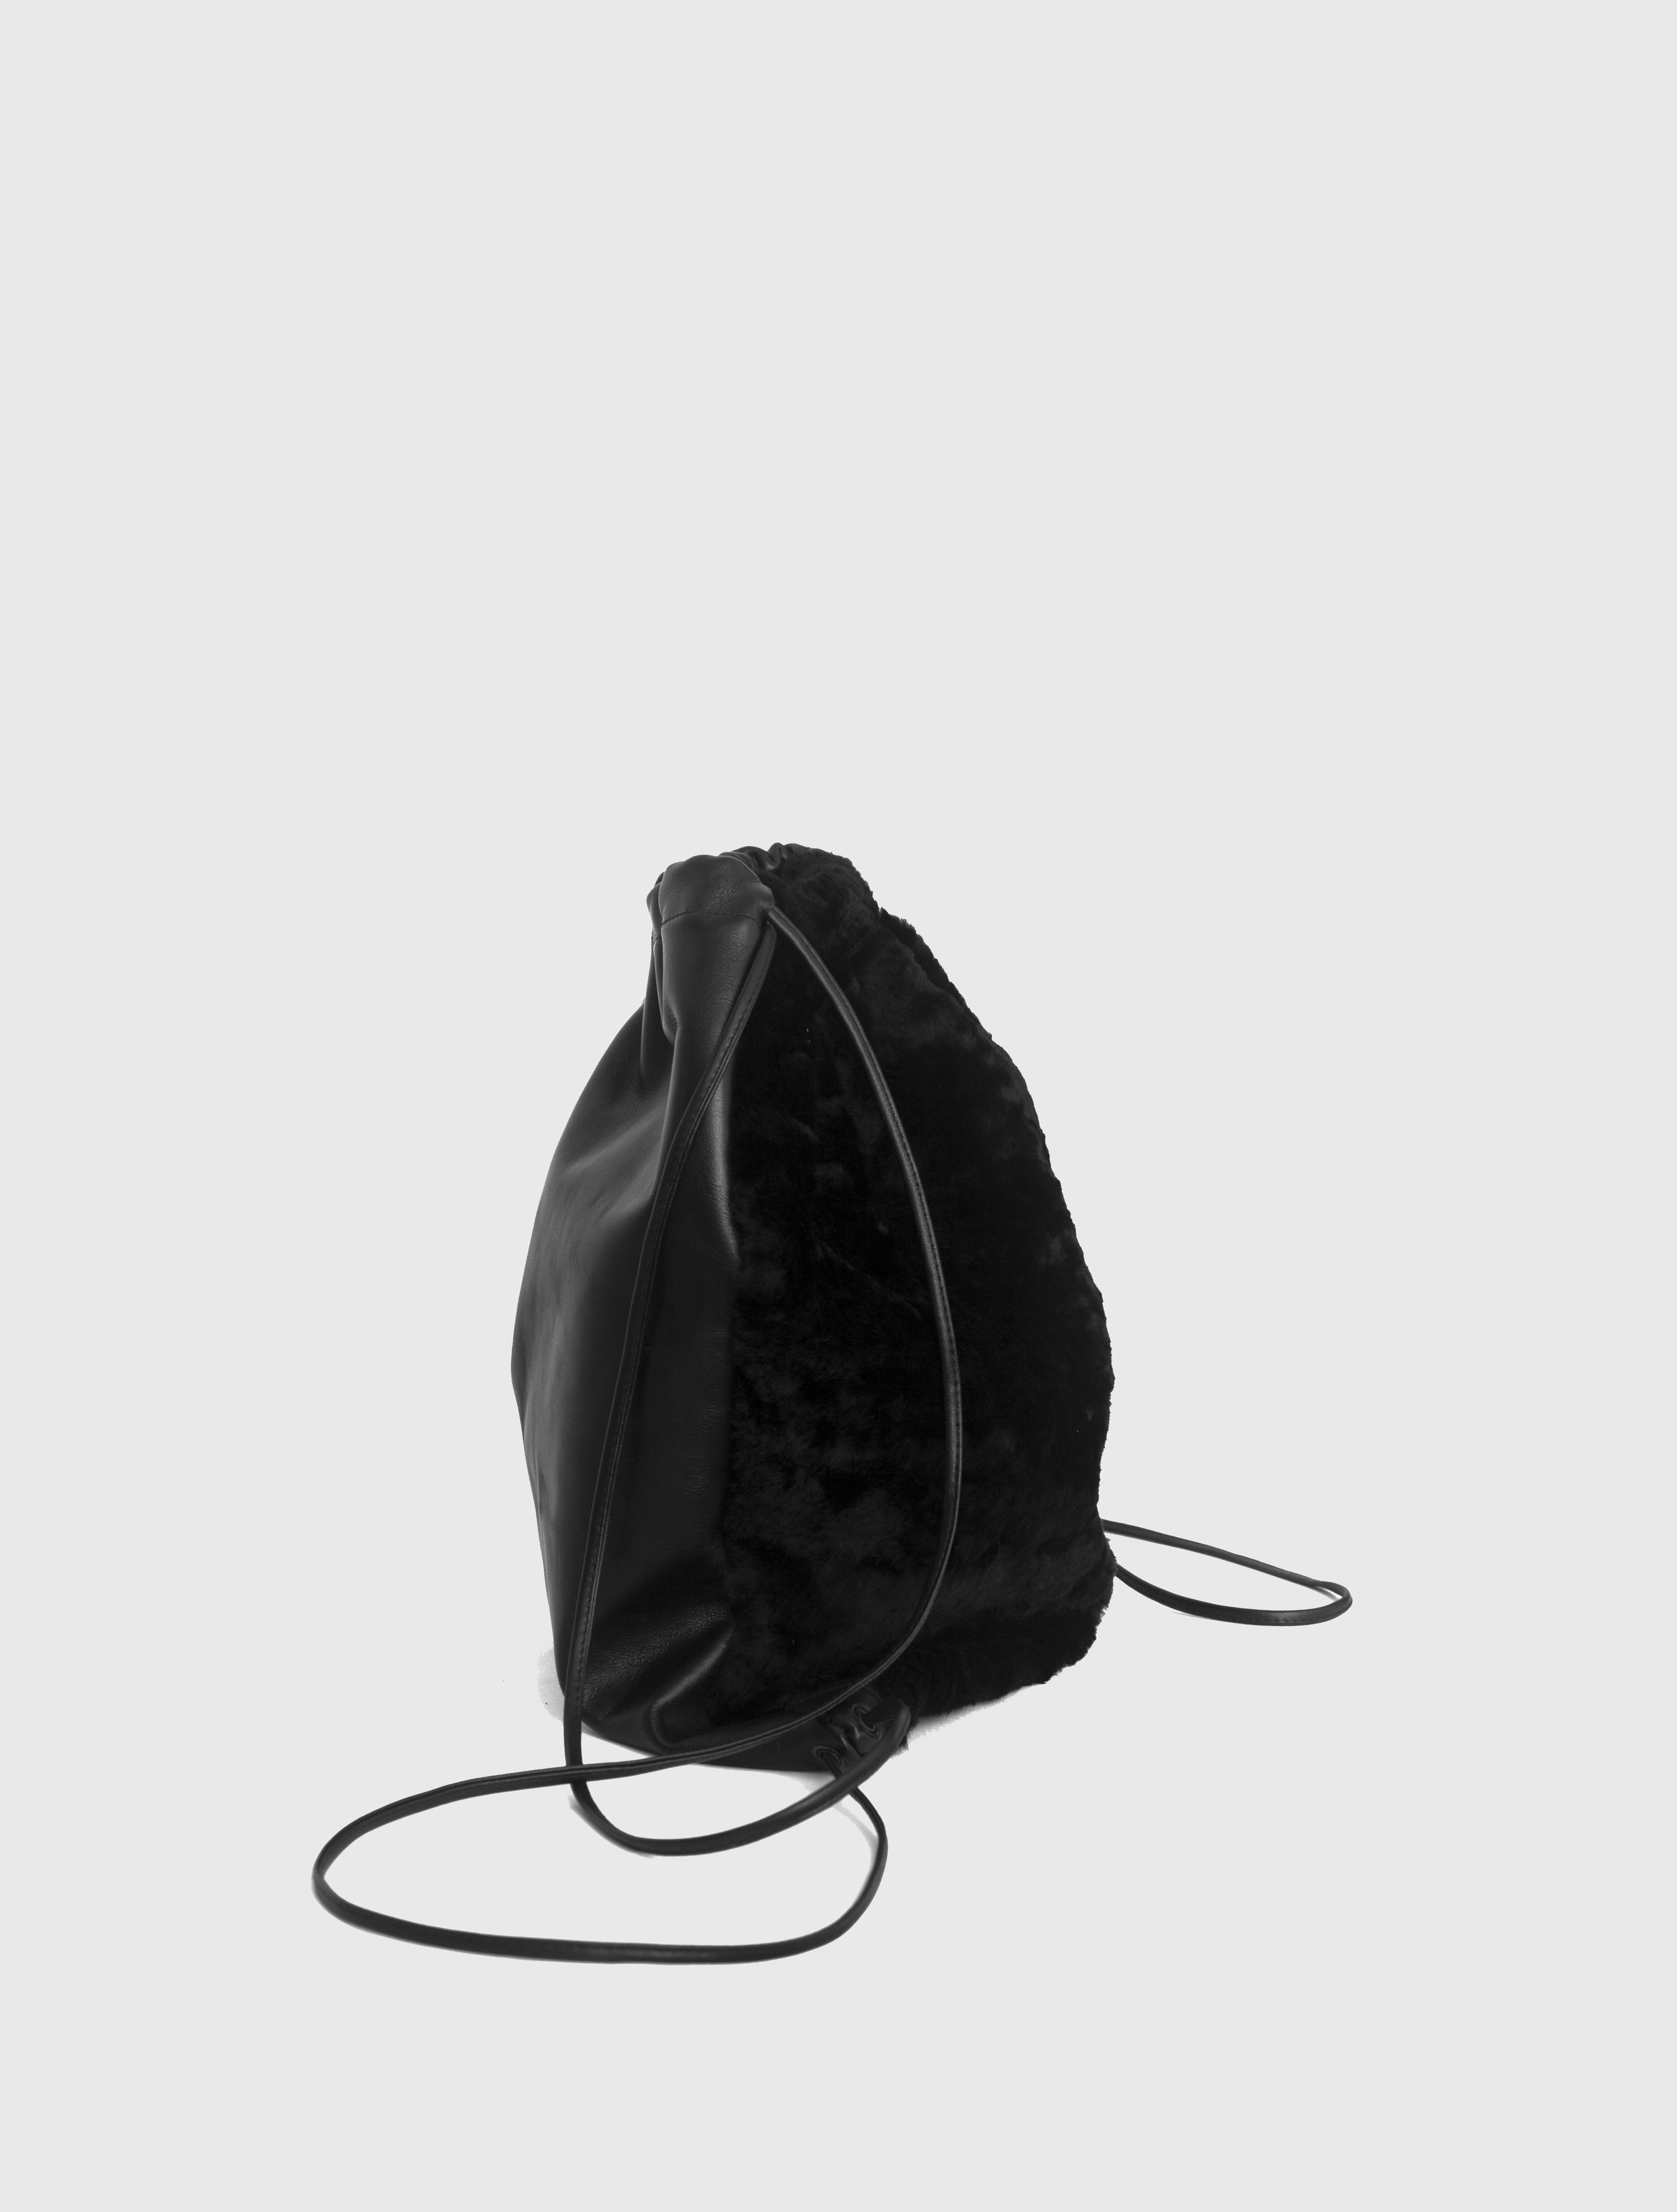 DRAWSTRING BACKPACK_0001_Layer 3.jpg